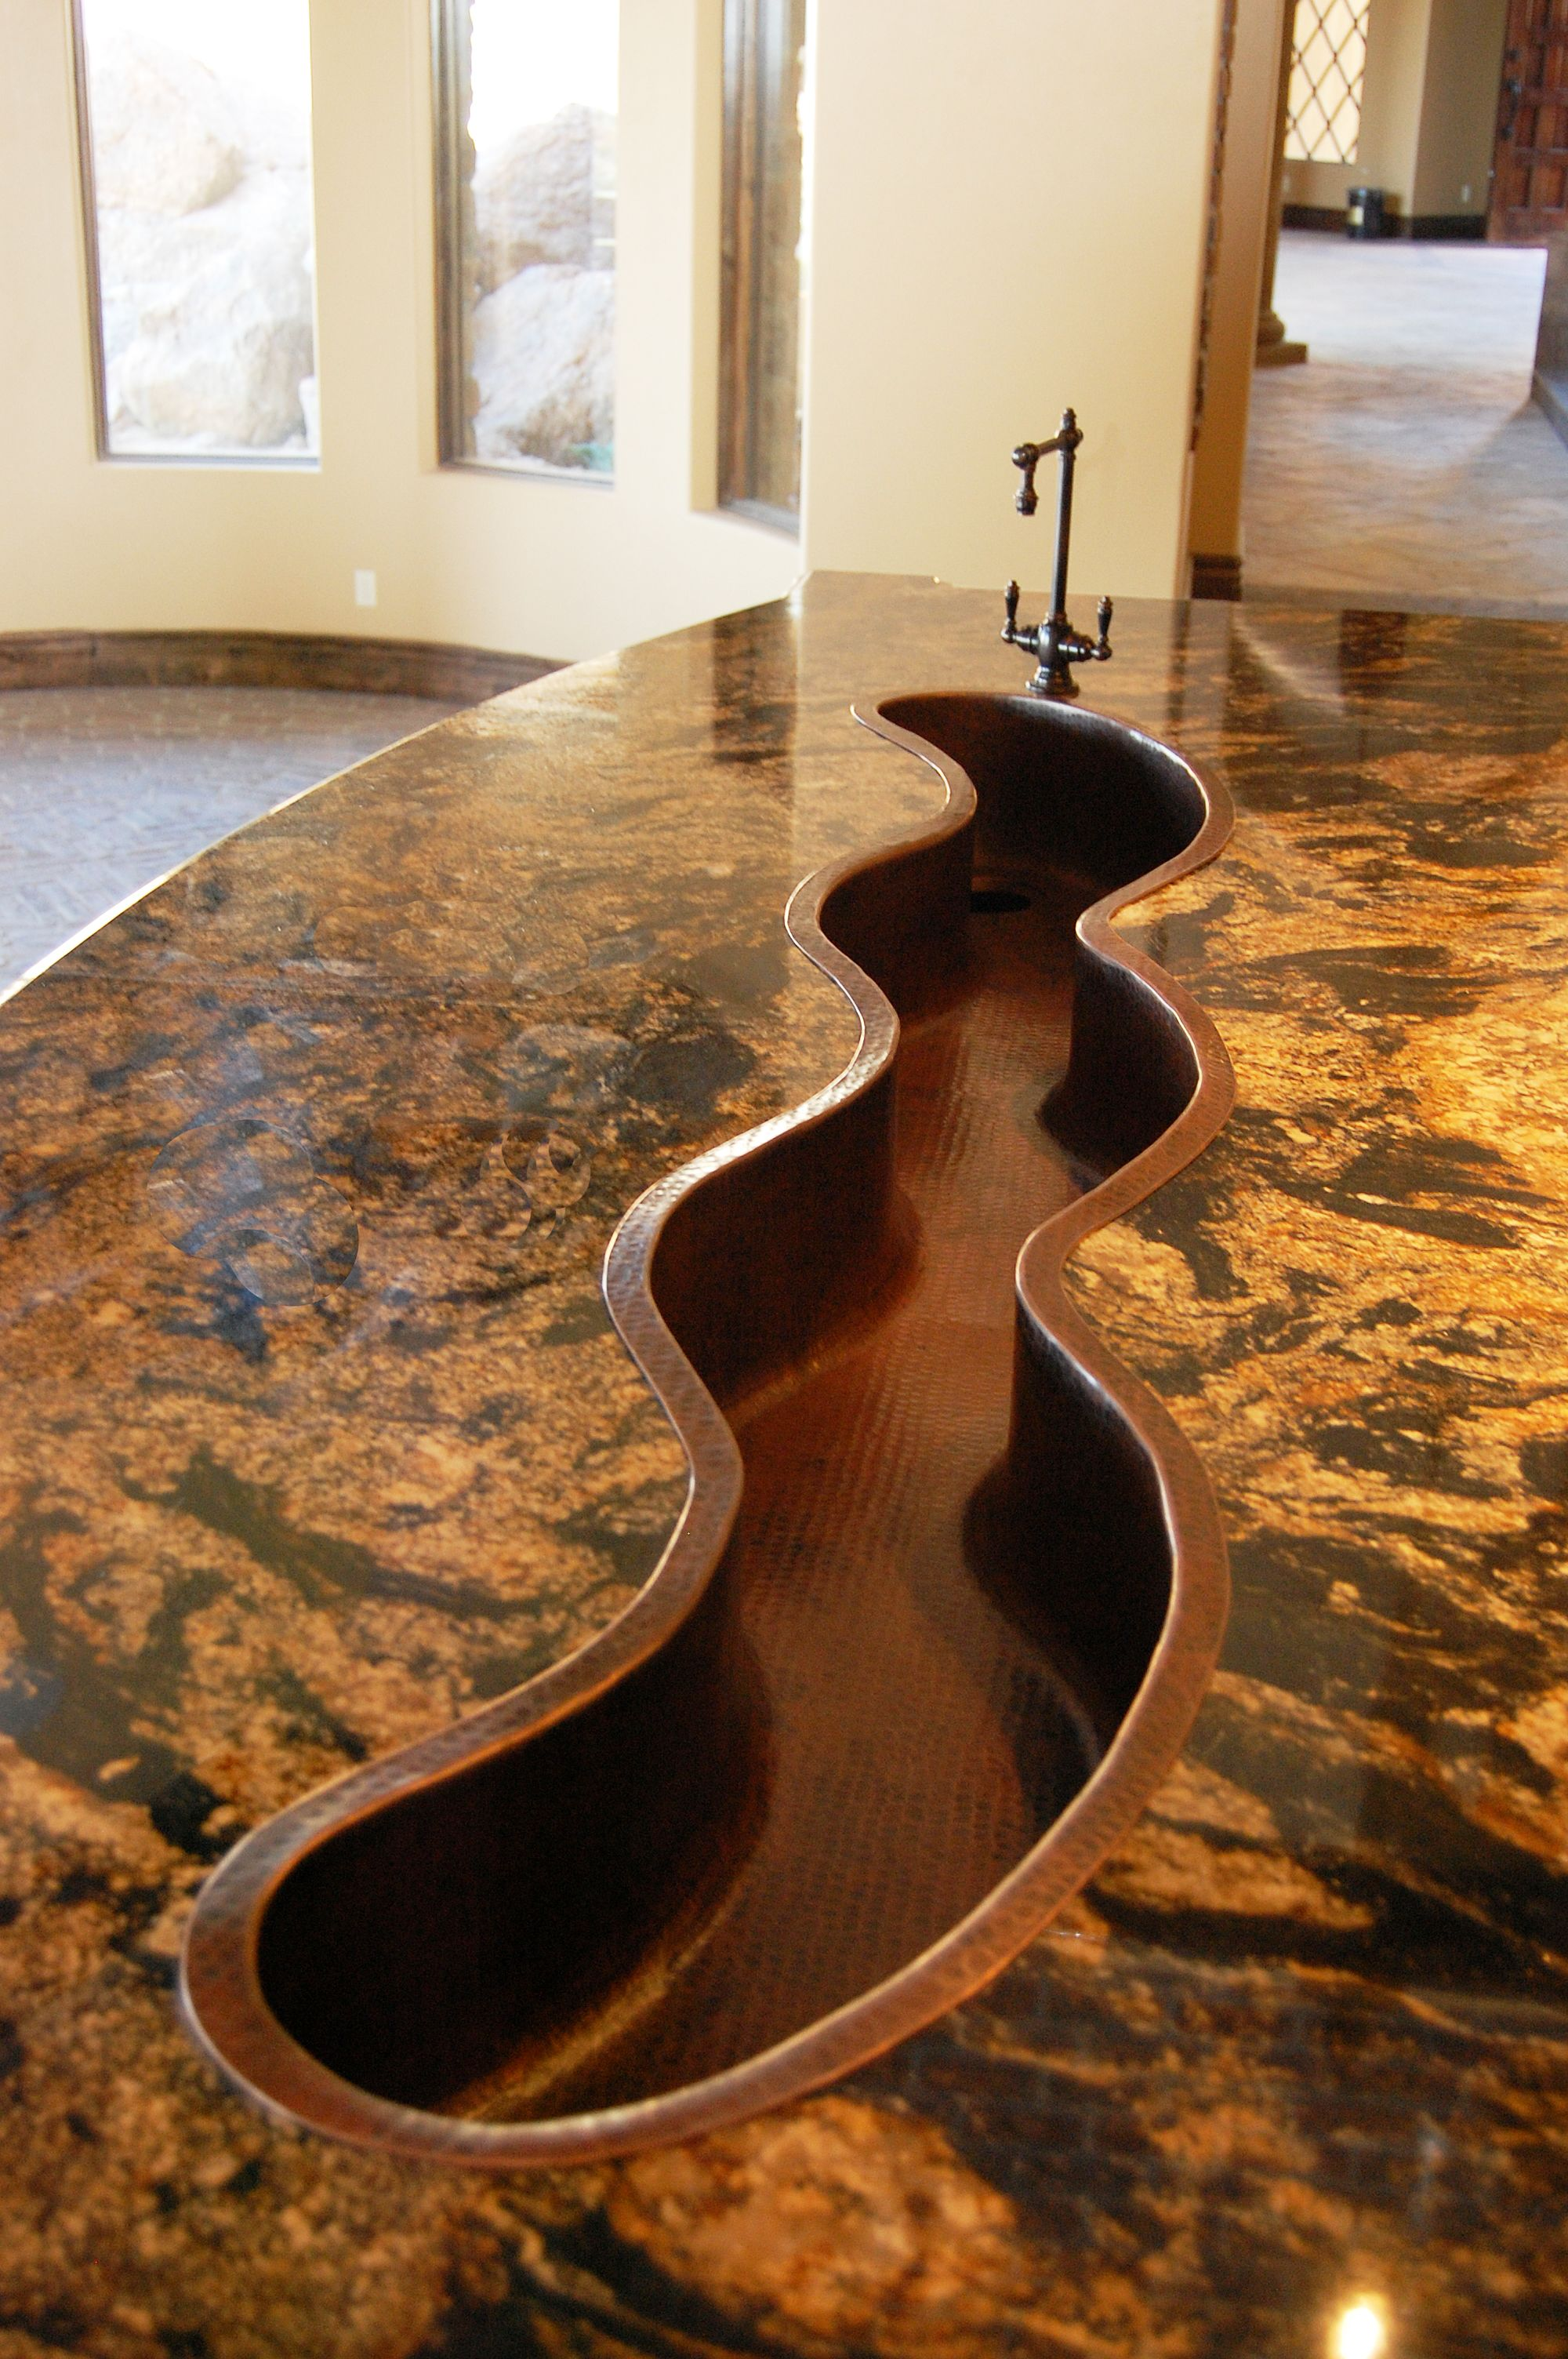 Featured On This 12 Foot Wide Kitchen Island Is A 8 Foot Custom Lazy River Coppersink What A